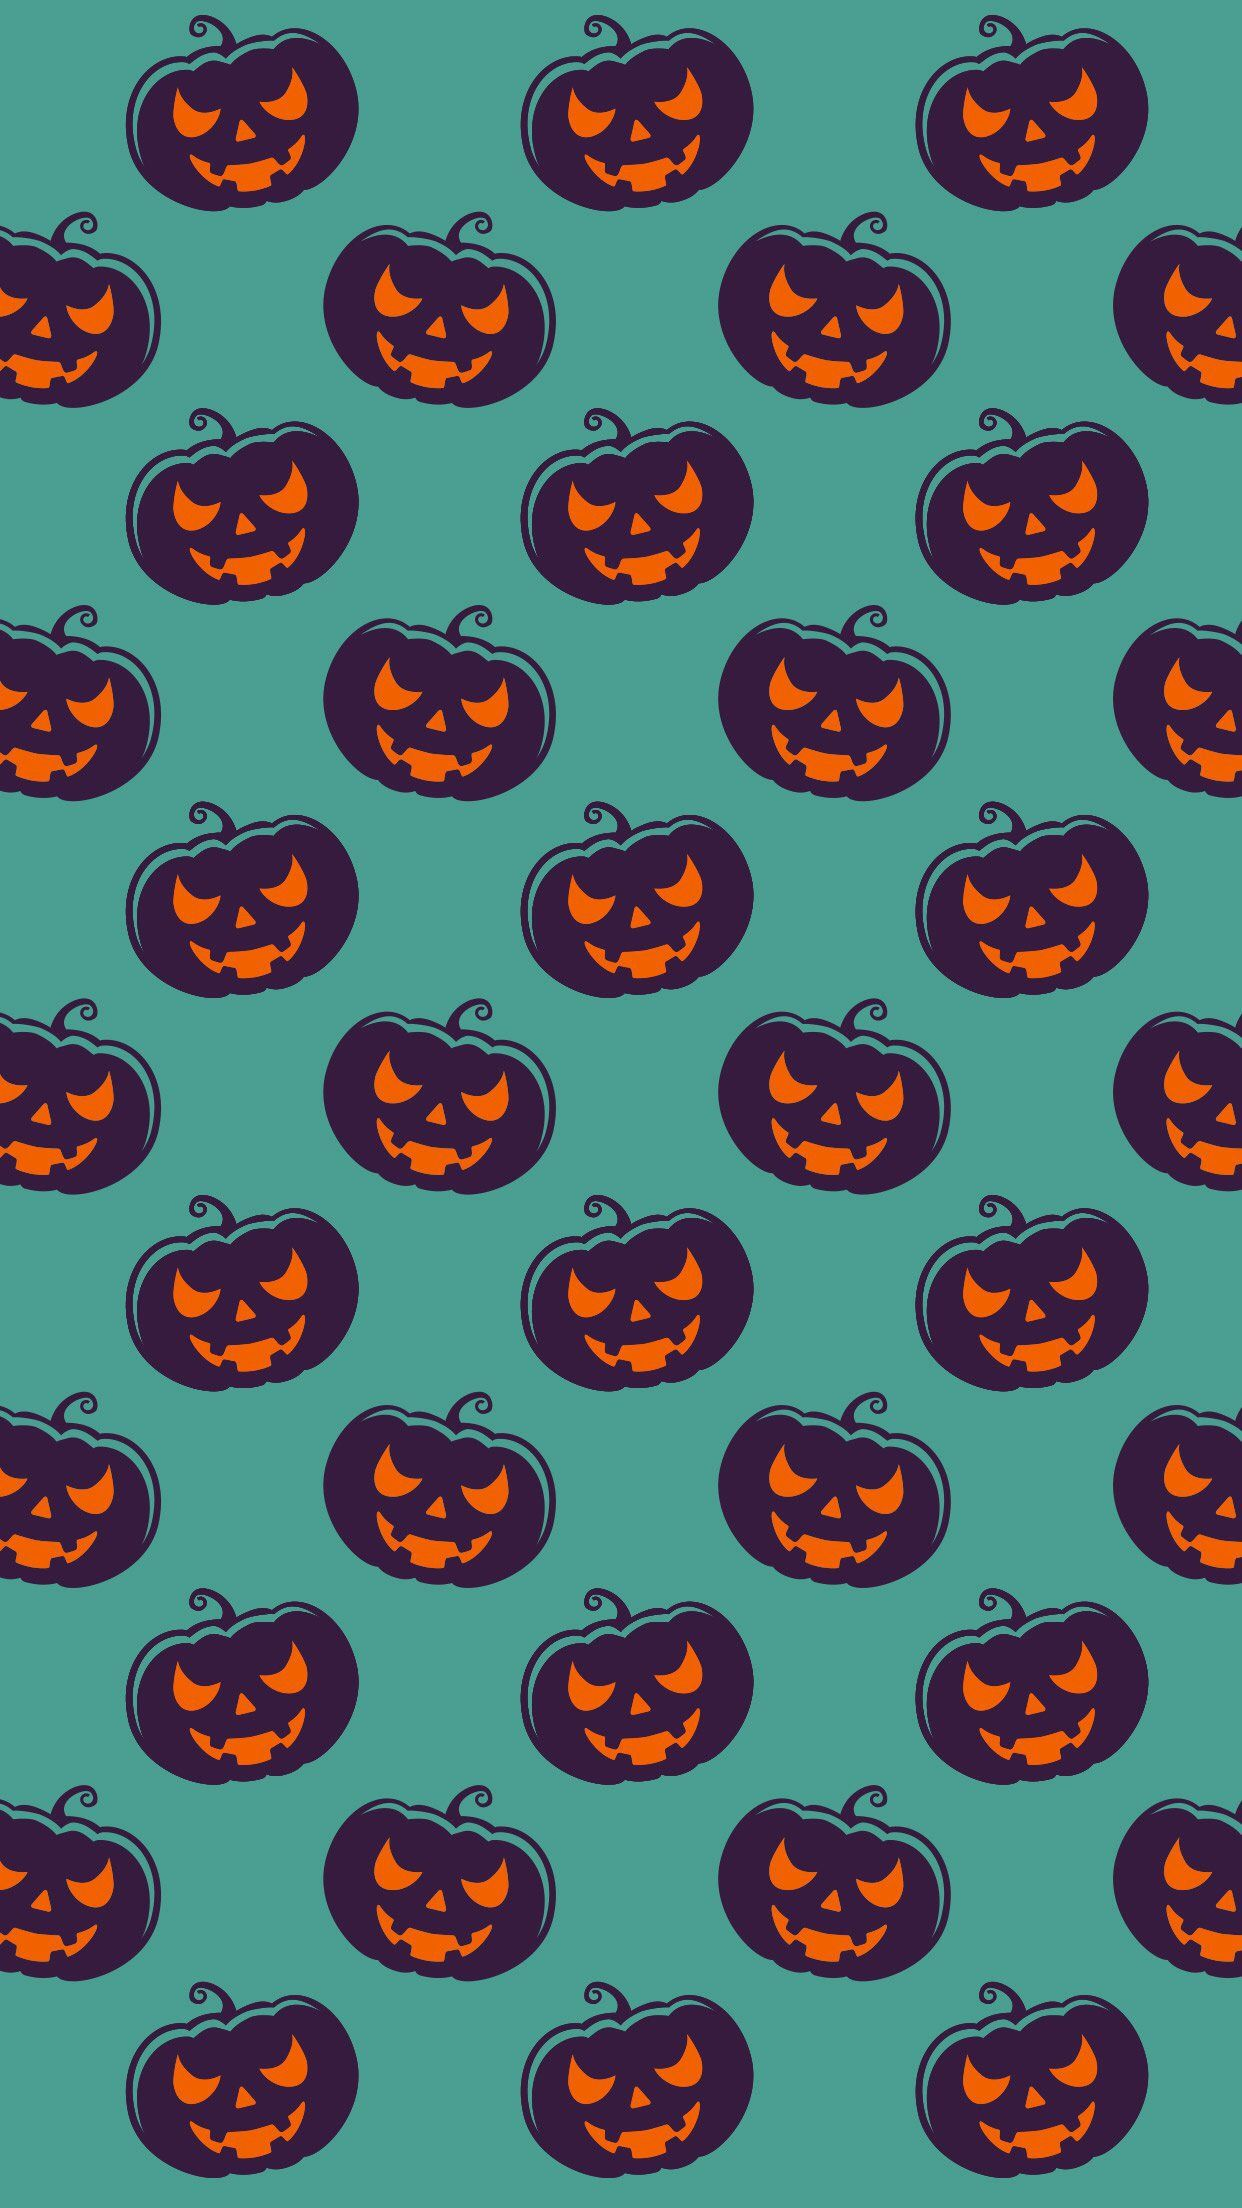 Pin By Raven Ghostly On Wallpaper Vol 10 Halloween Wallpaper Iphone Pumpkin Wallpaper Halloween Wallpaper